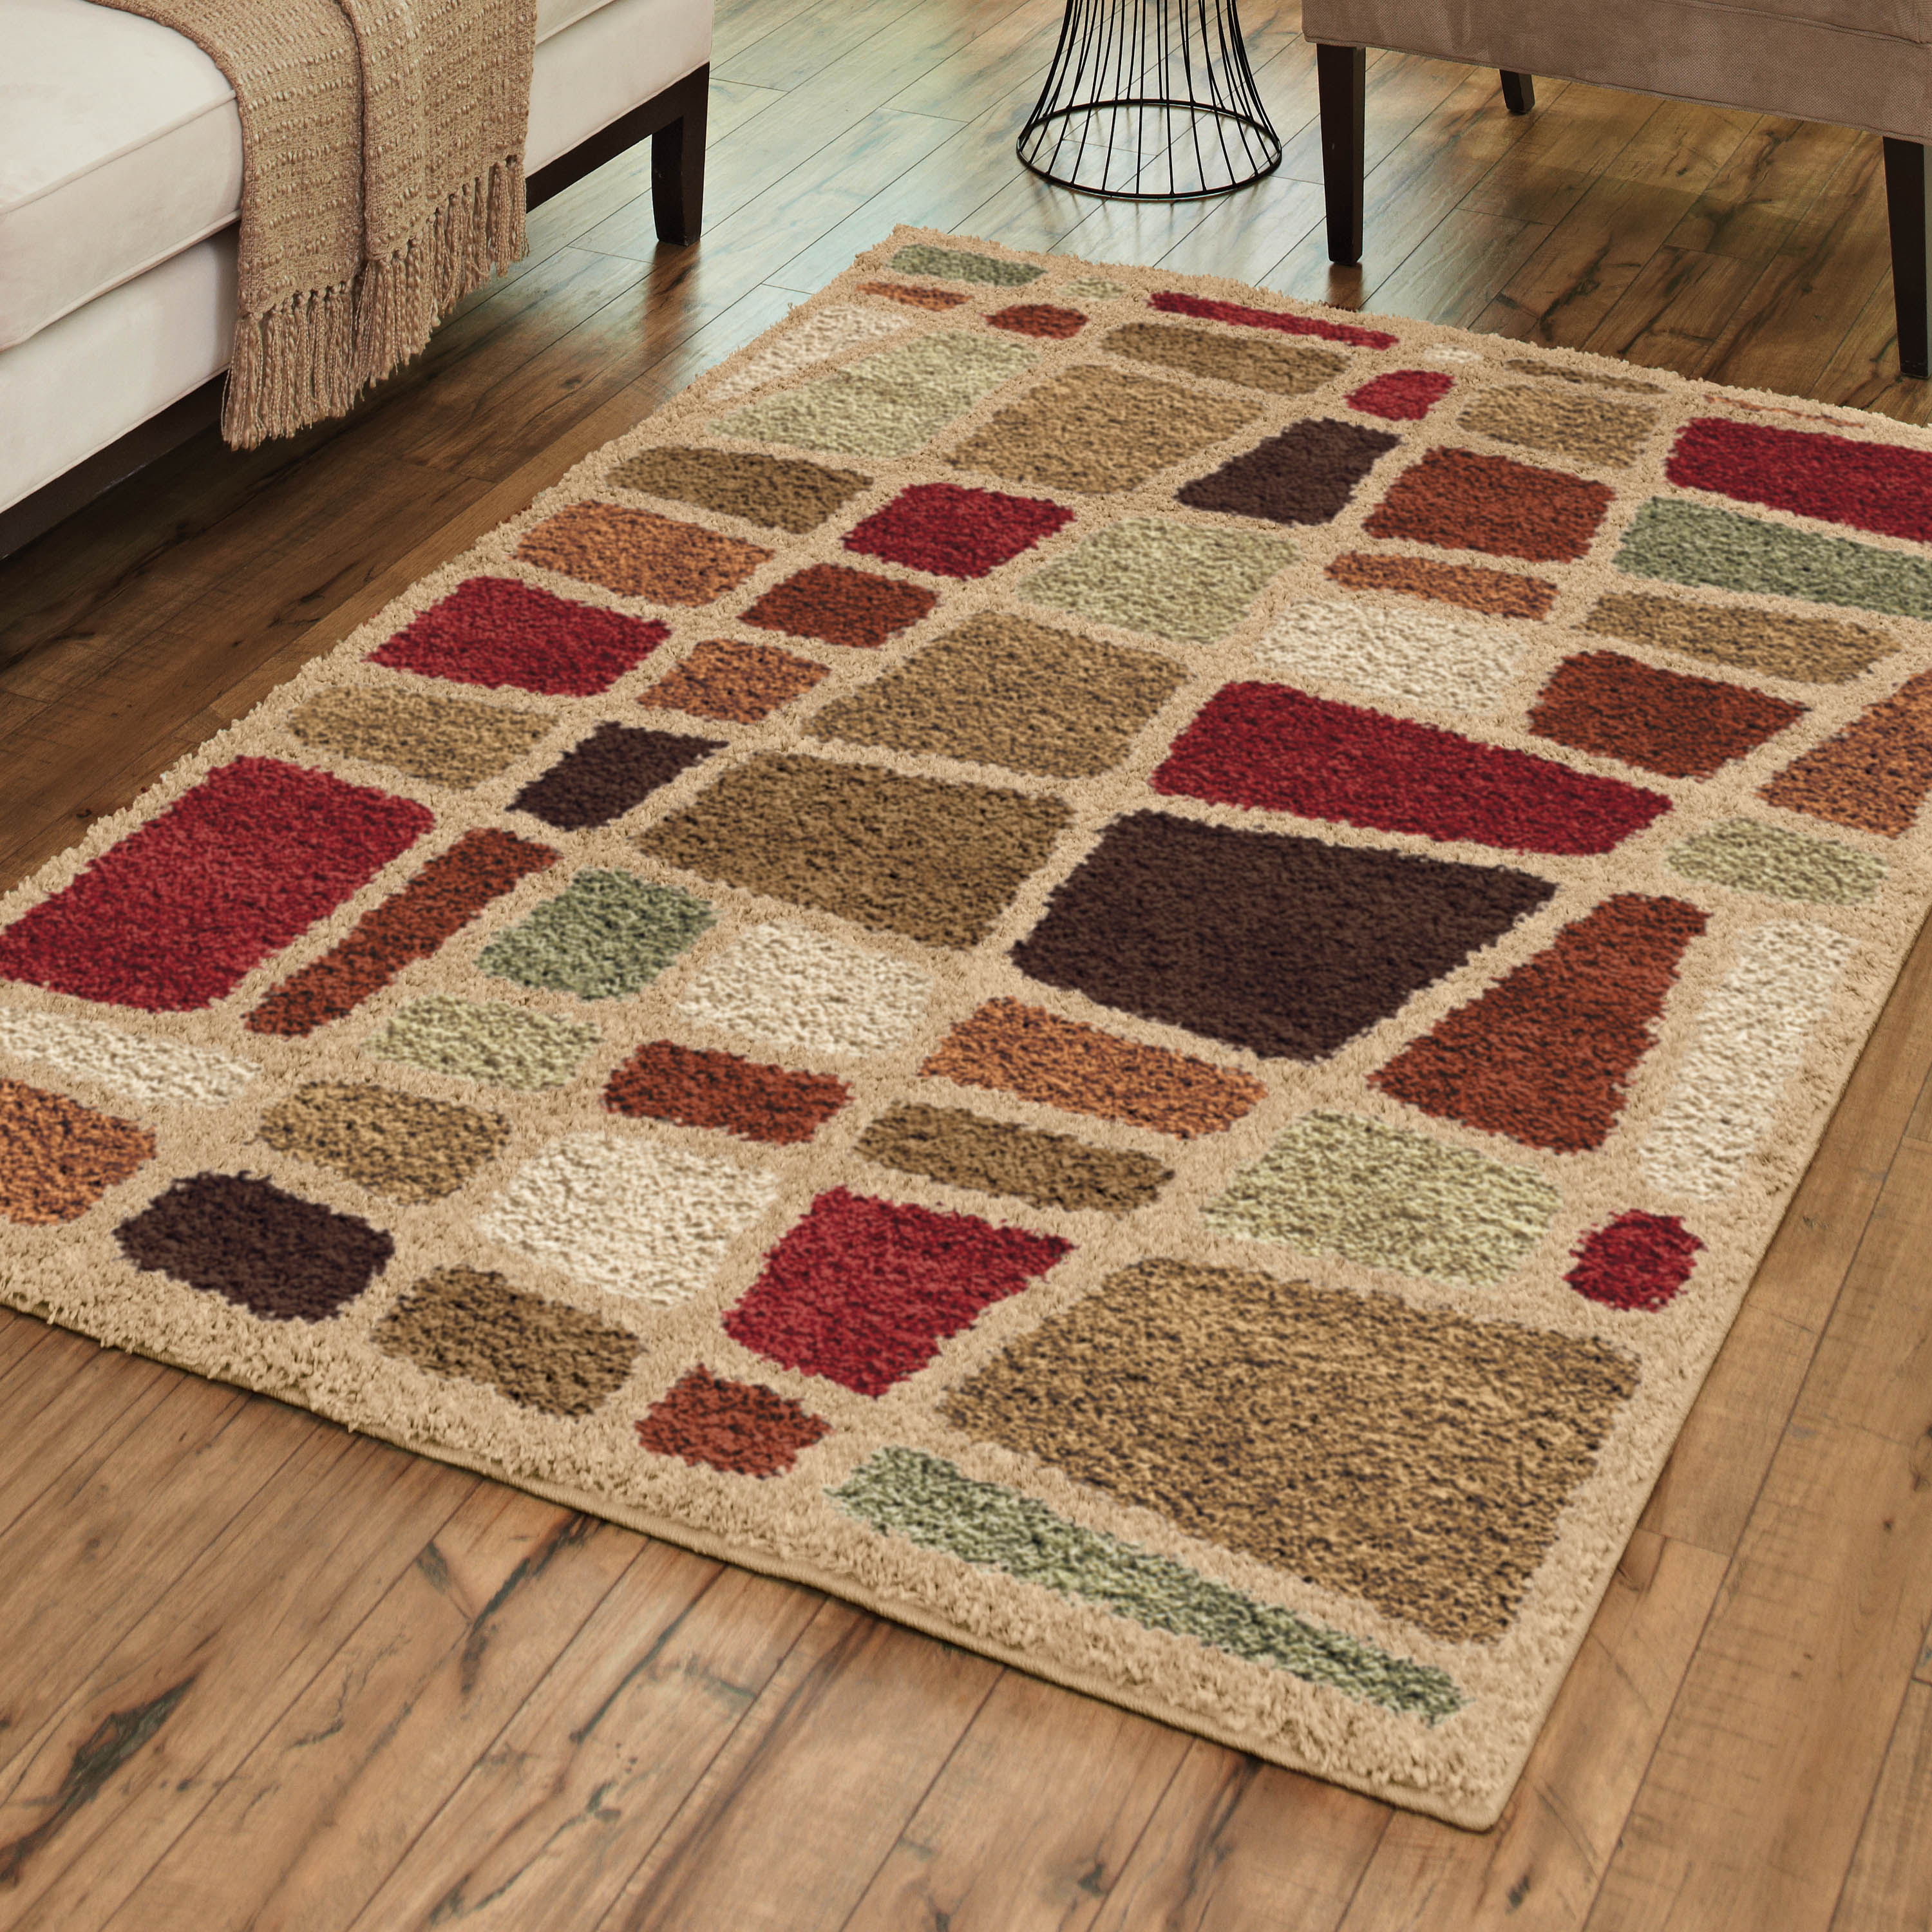 Orian Rugs Streetfair Shag Area Rug or Runner